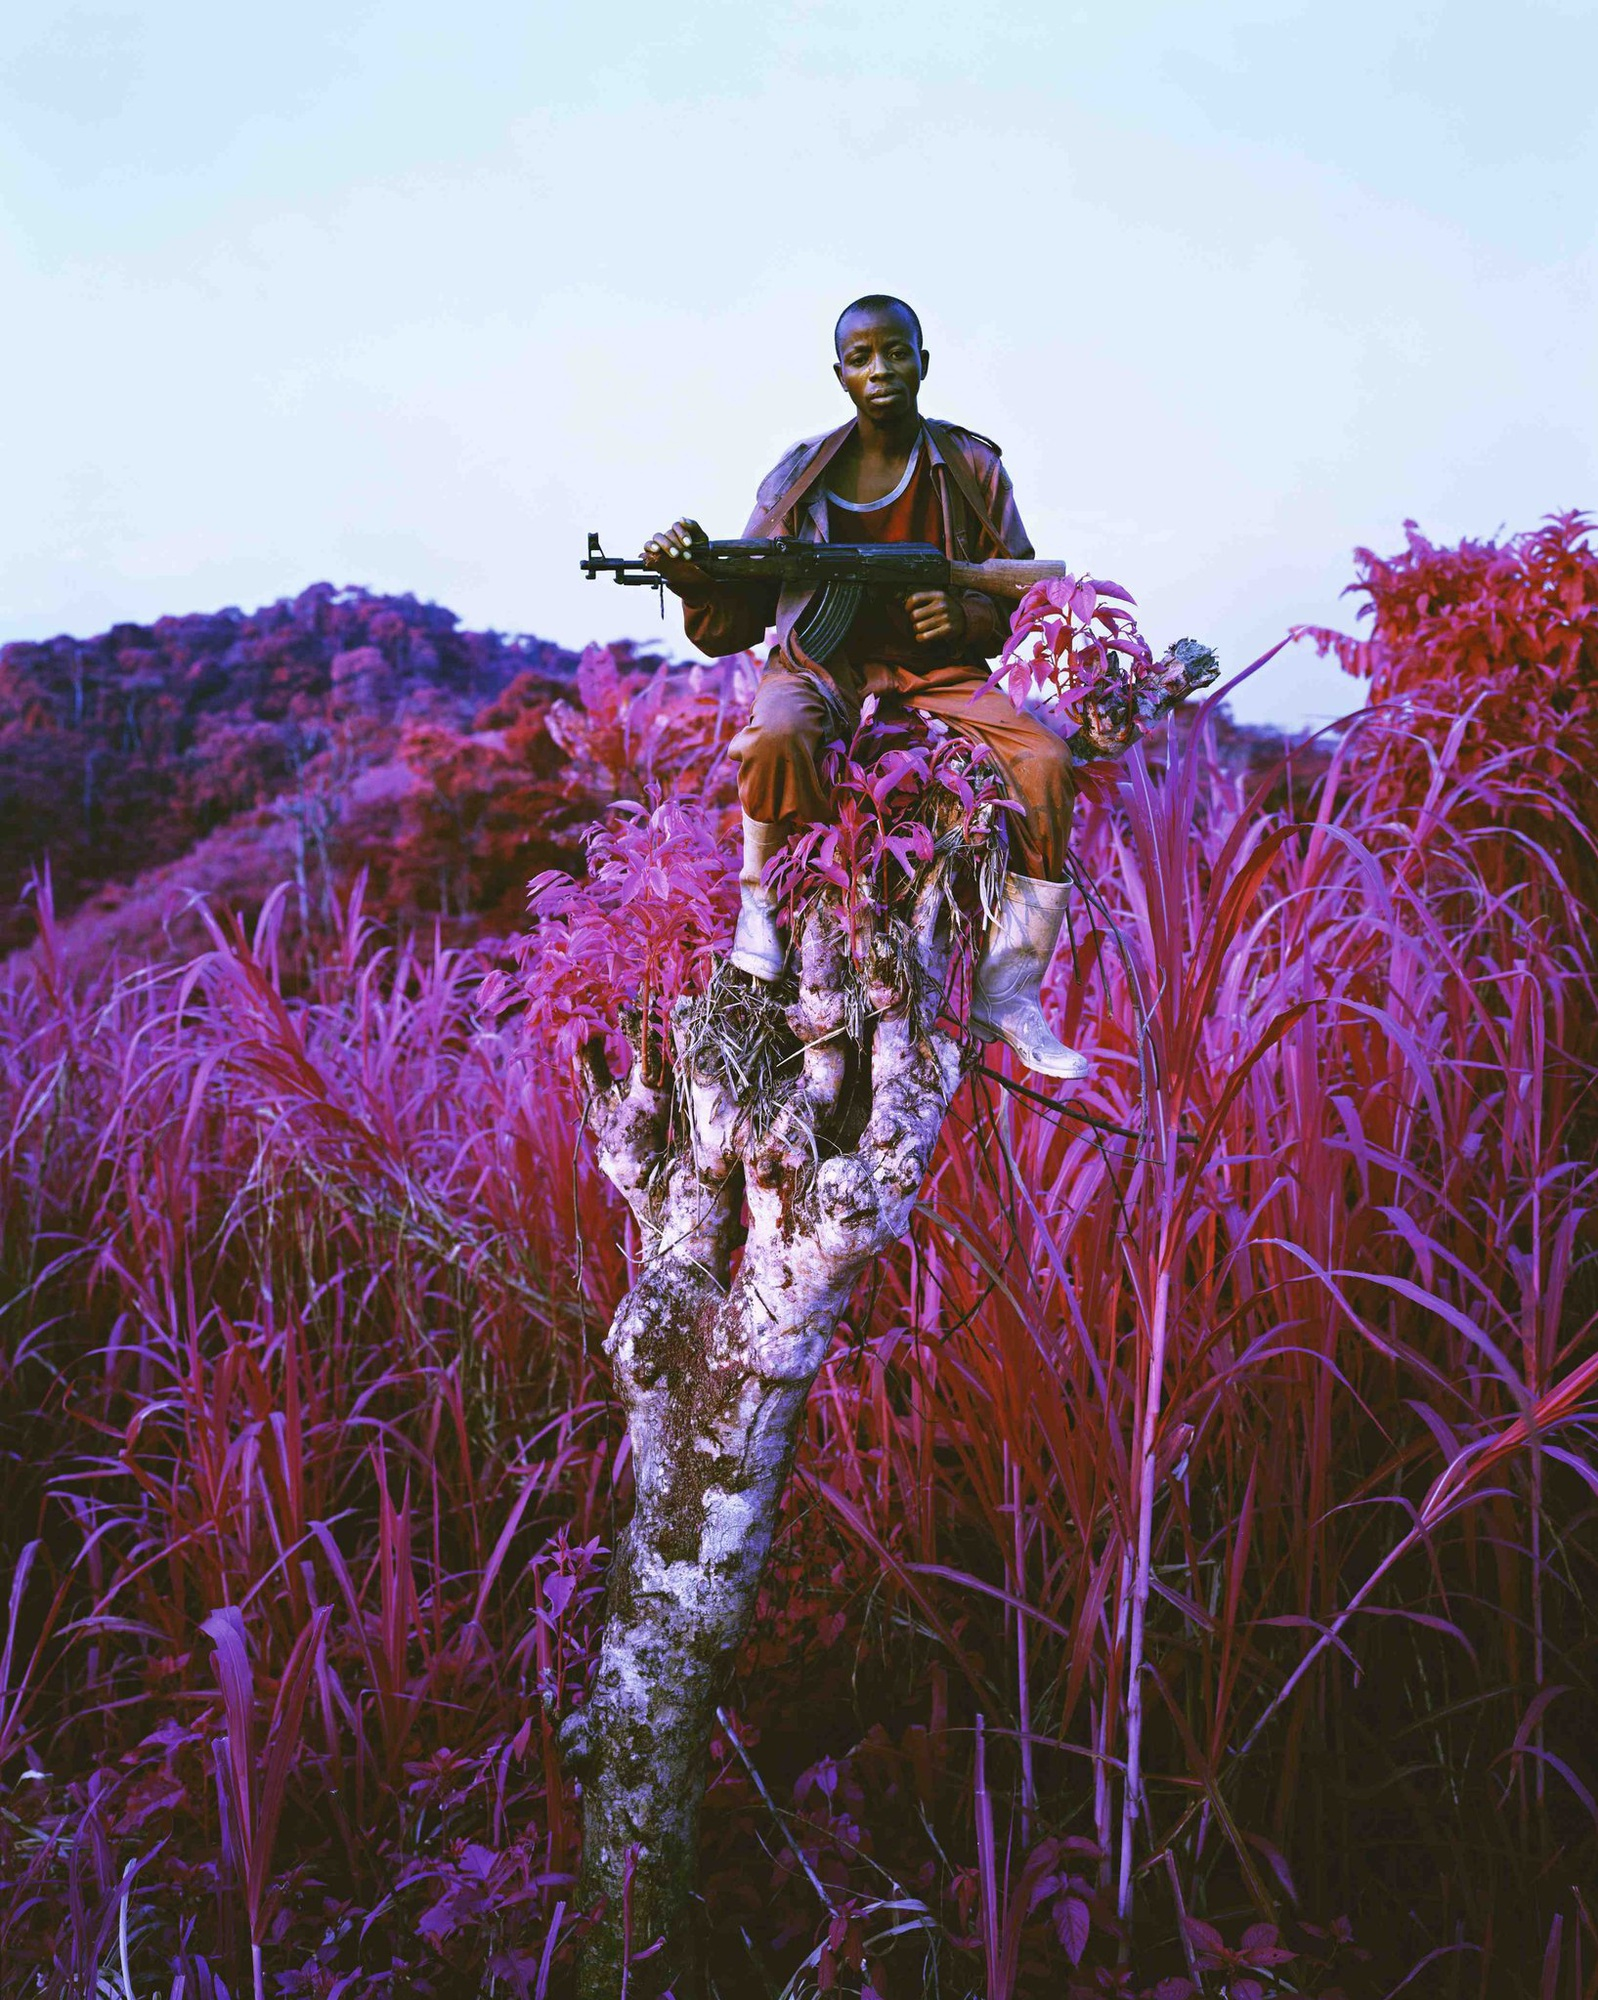 Richard Mosse - Higher Ground, 2012, C-print, 90 x 72 in. (228.6 x 182.9 cm.), Edition of 2 +1AP © Richard Mosse